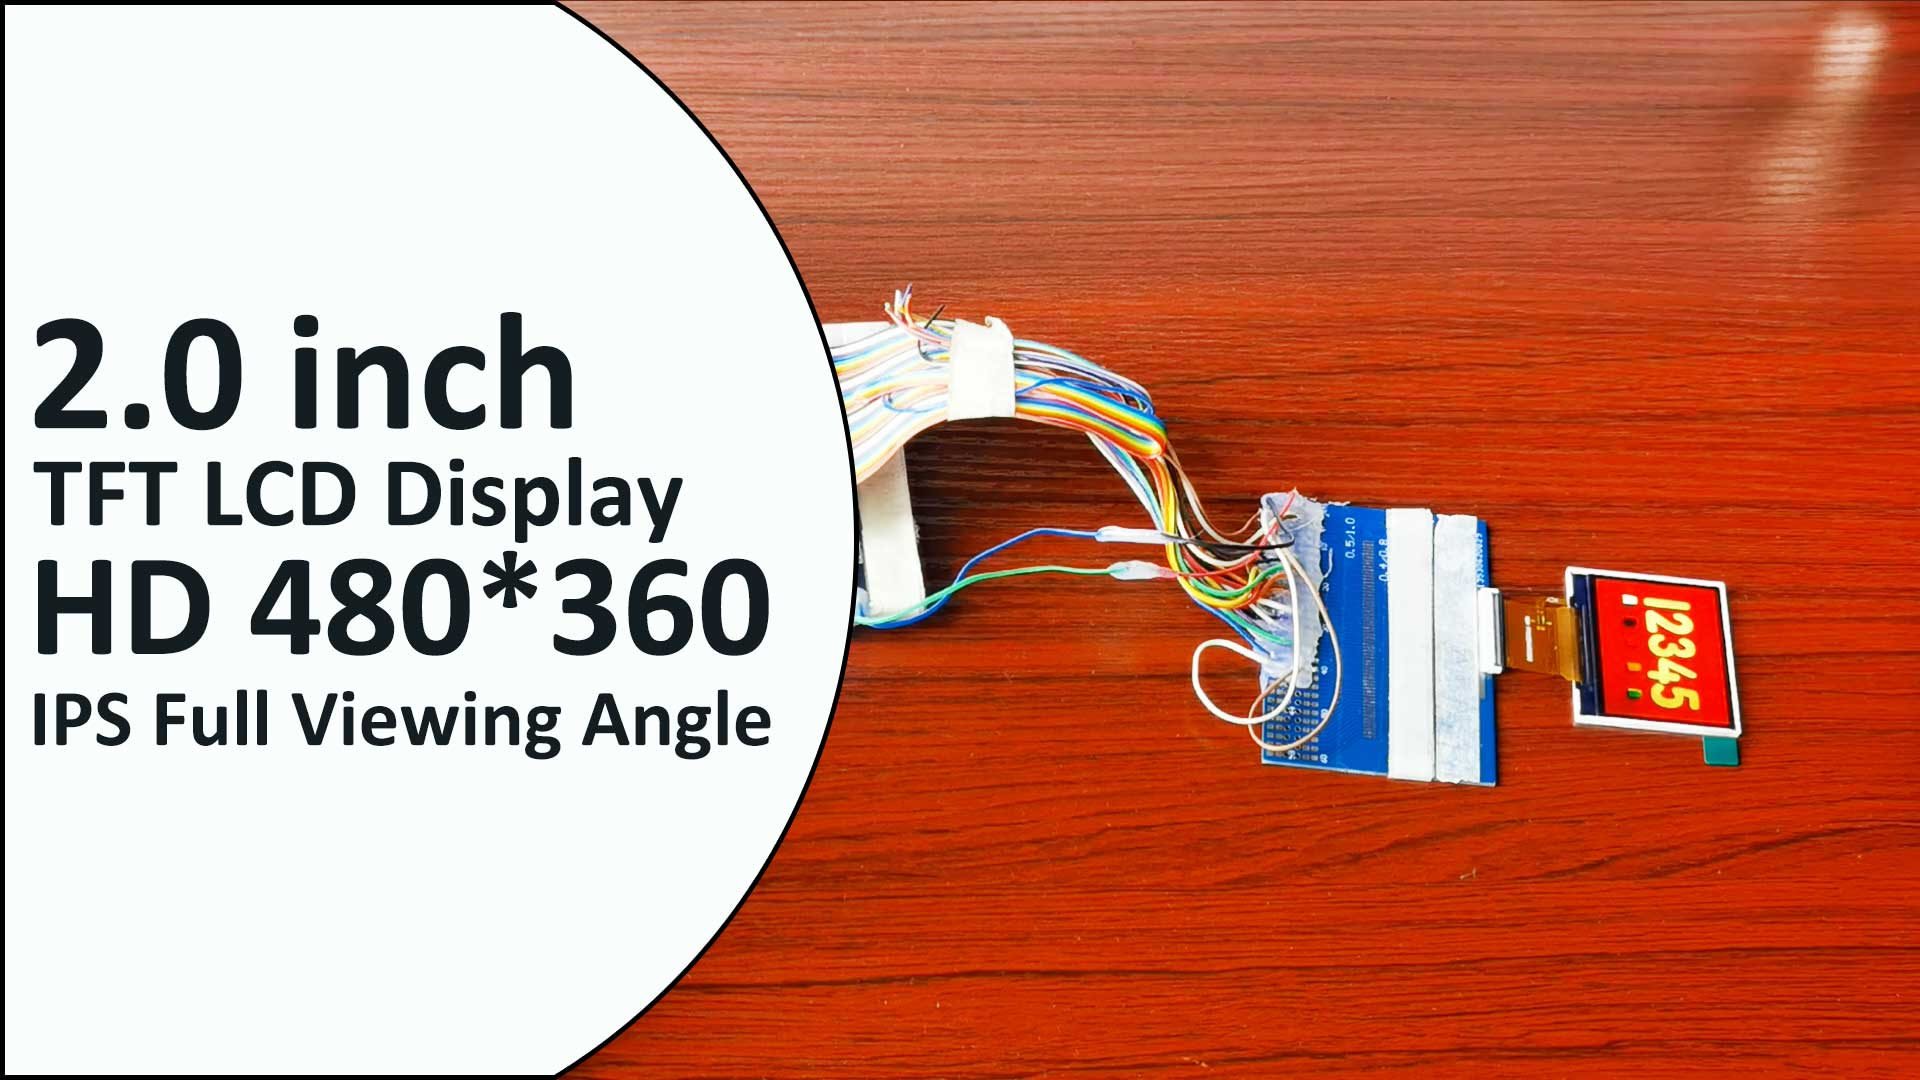 2.0 inch IPS Landscape LCD Display Module 480*360 MIPI RGB 2 inch TFT Screen ST7701S 40 Pin